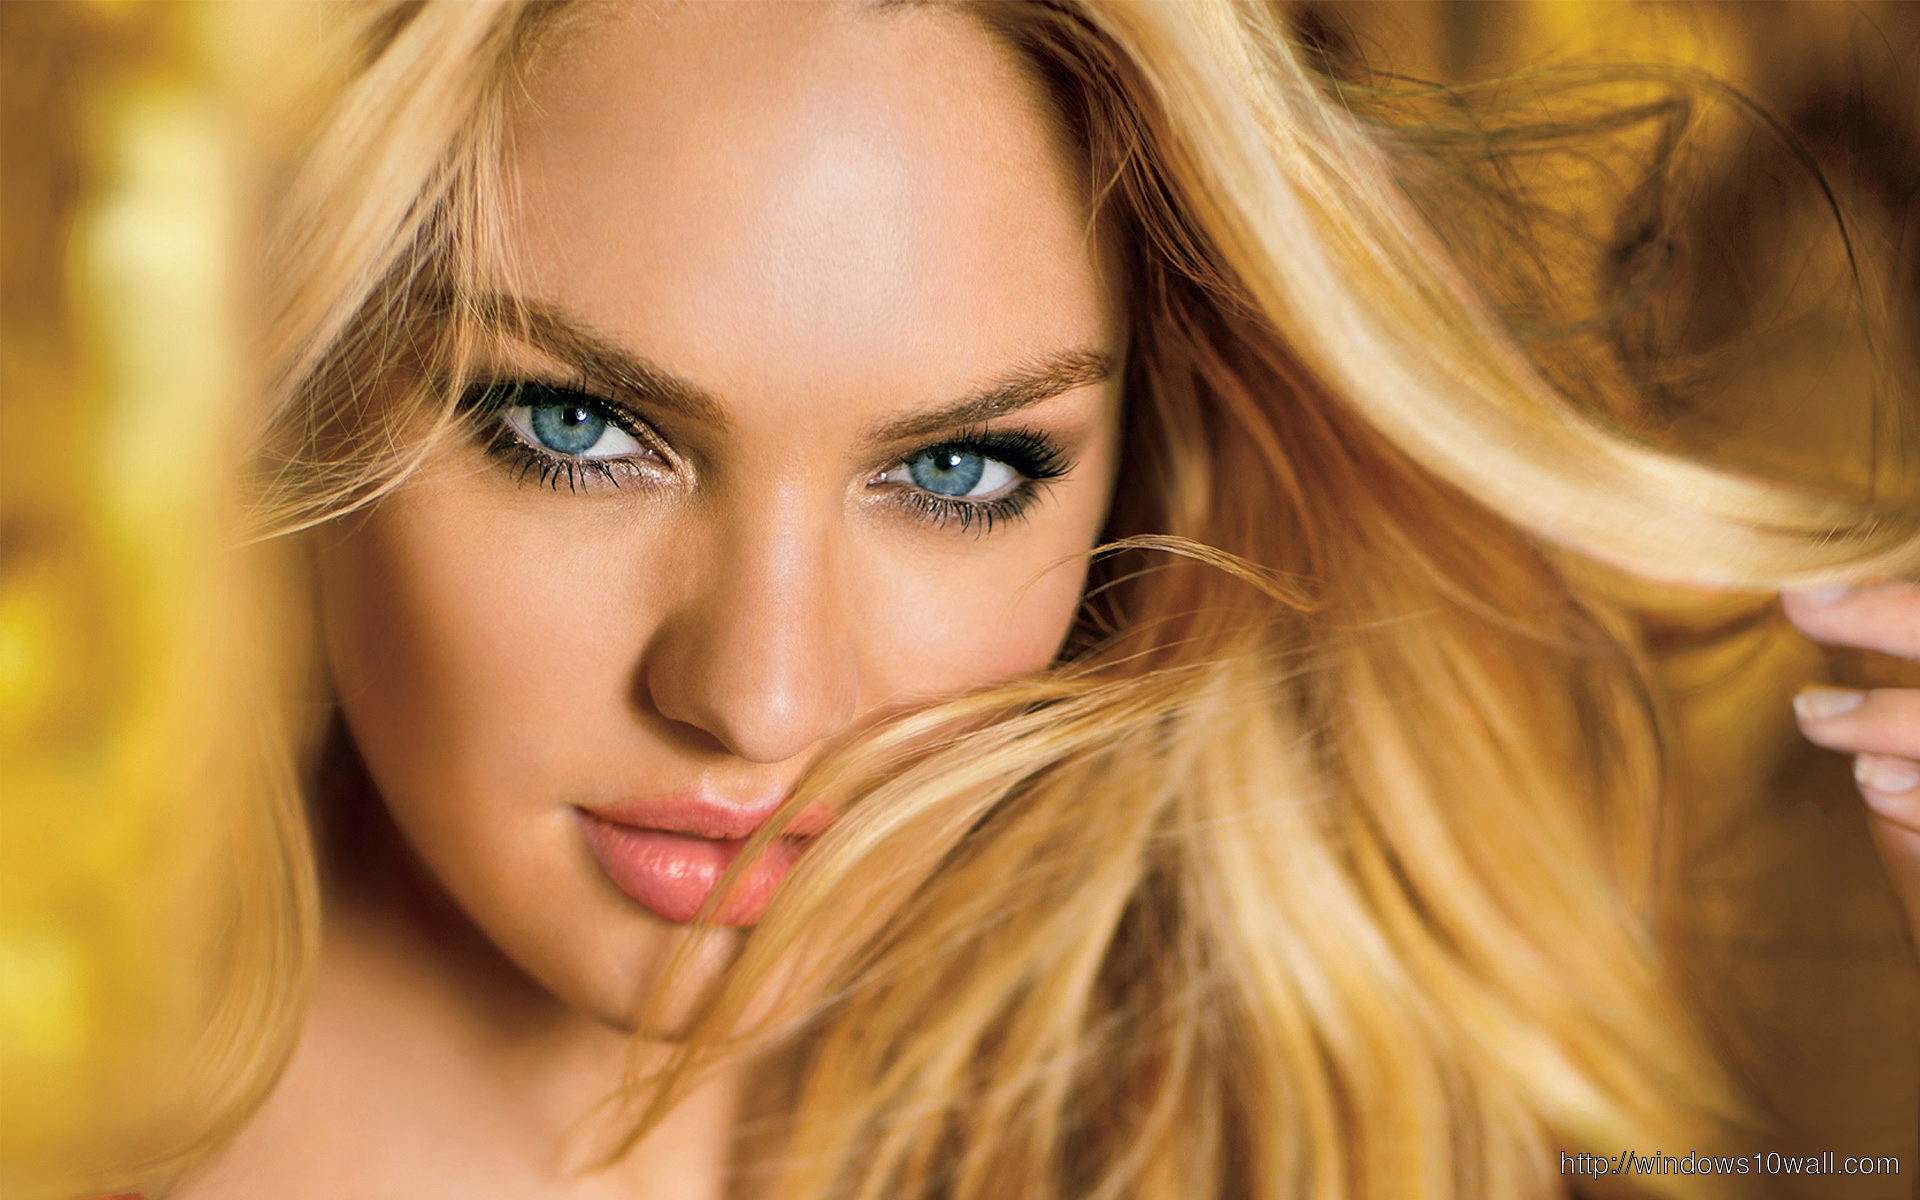 Candice Swanepoel HD desktop wallpaper